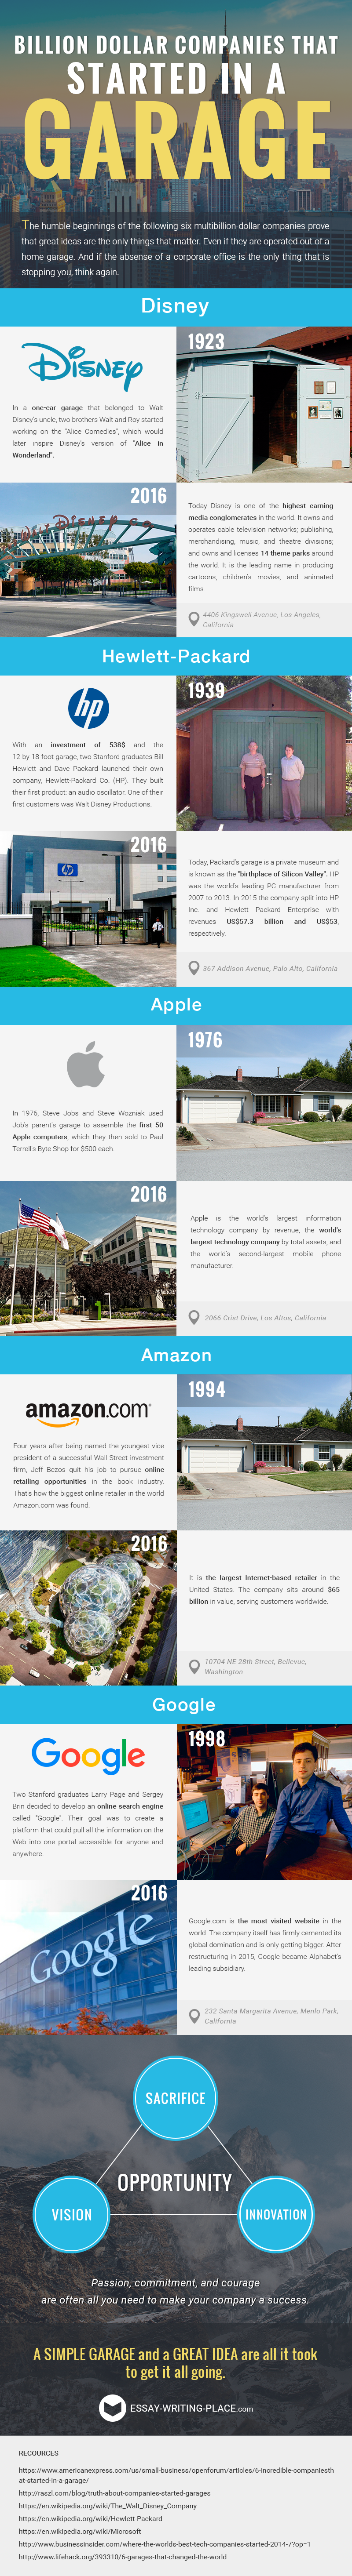 Billion Dollar Companies That Started in Garage